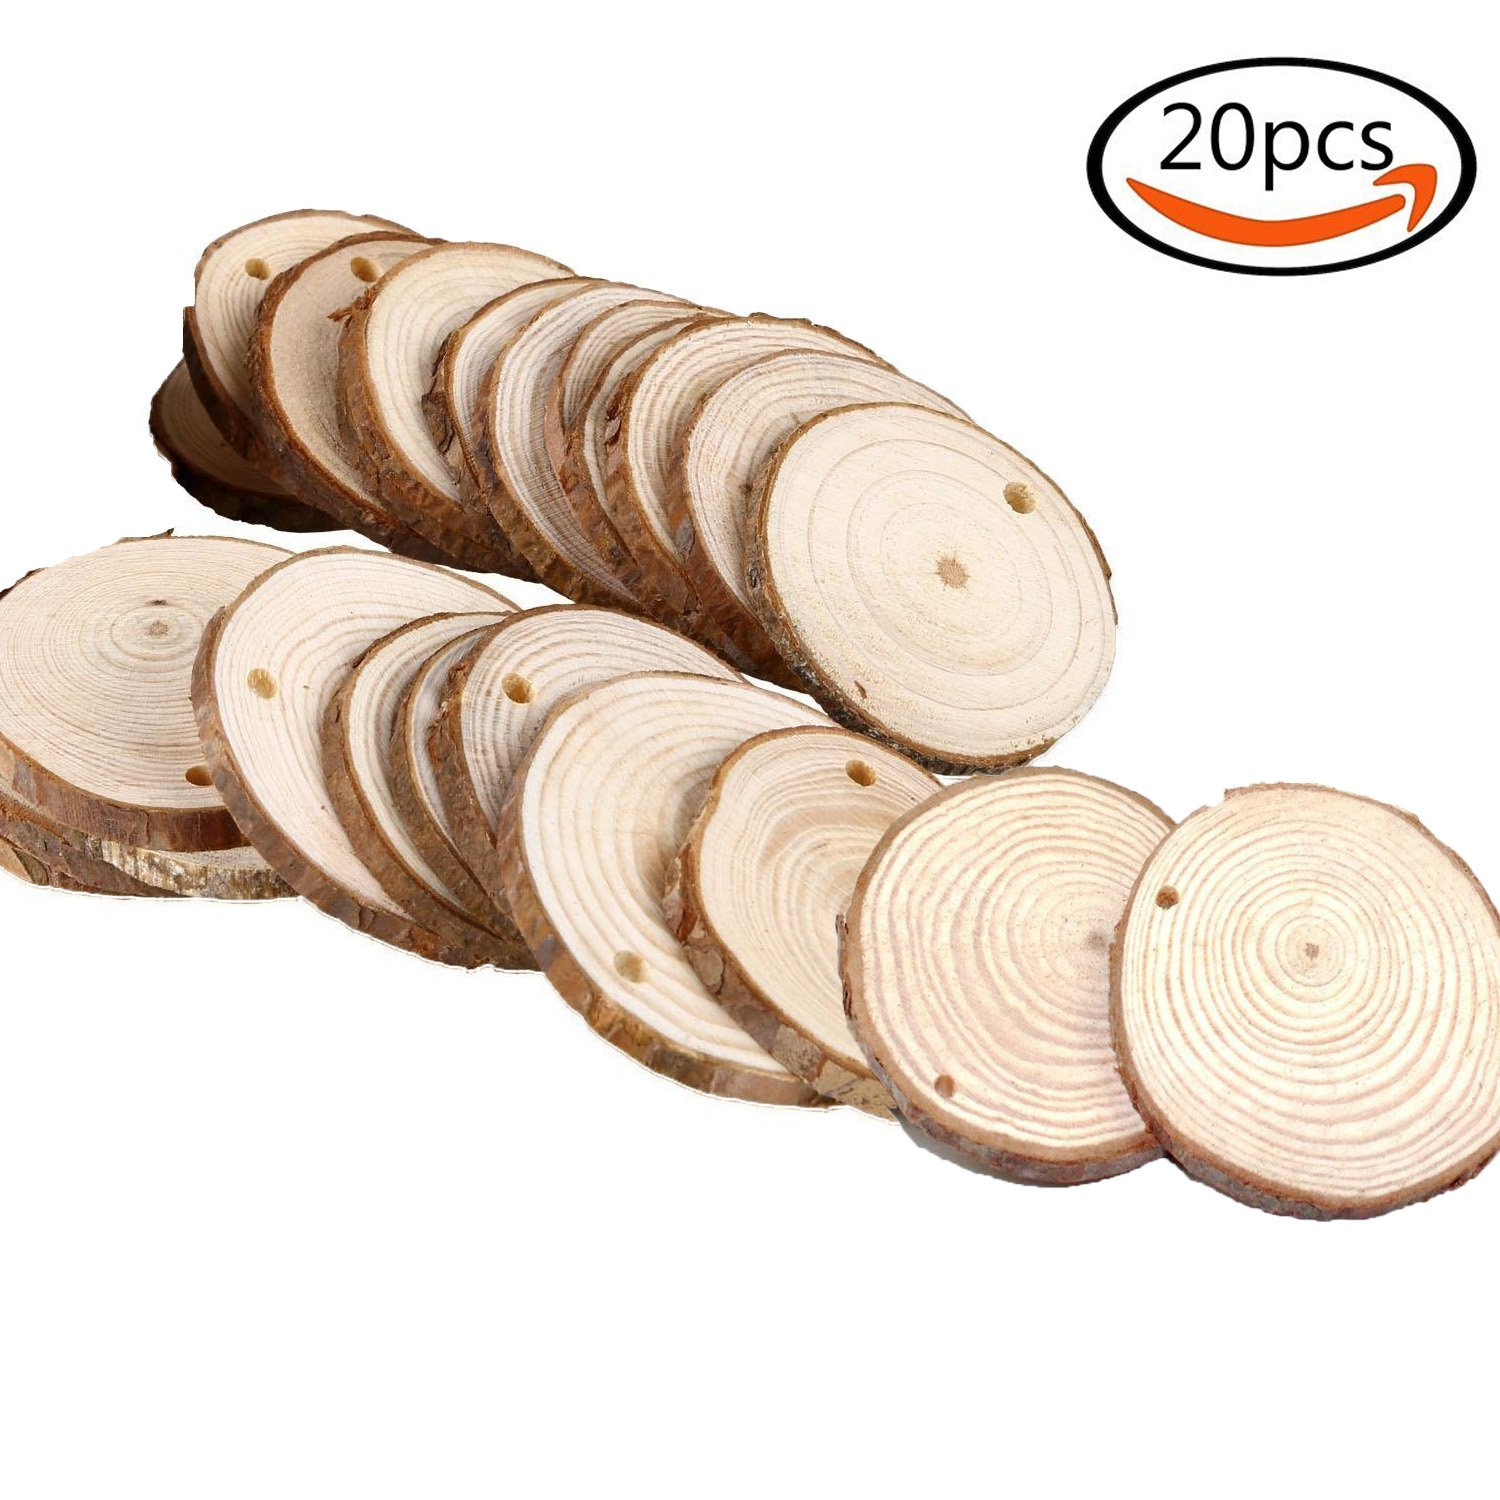 20Pcs Natural Round Wood Slices for DIY Crafting Coasters Arts Crafts Home Decorations Event Ornaments with 2 different Size Twshiny